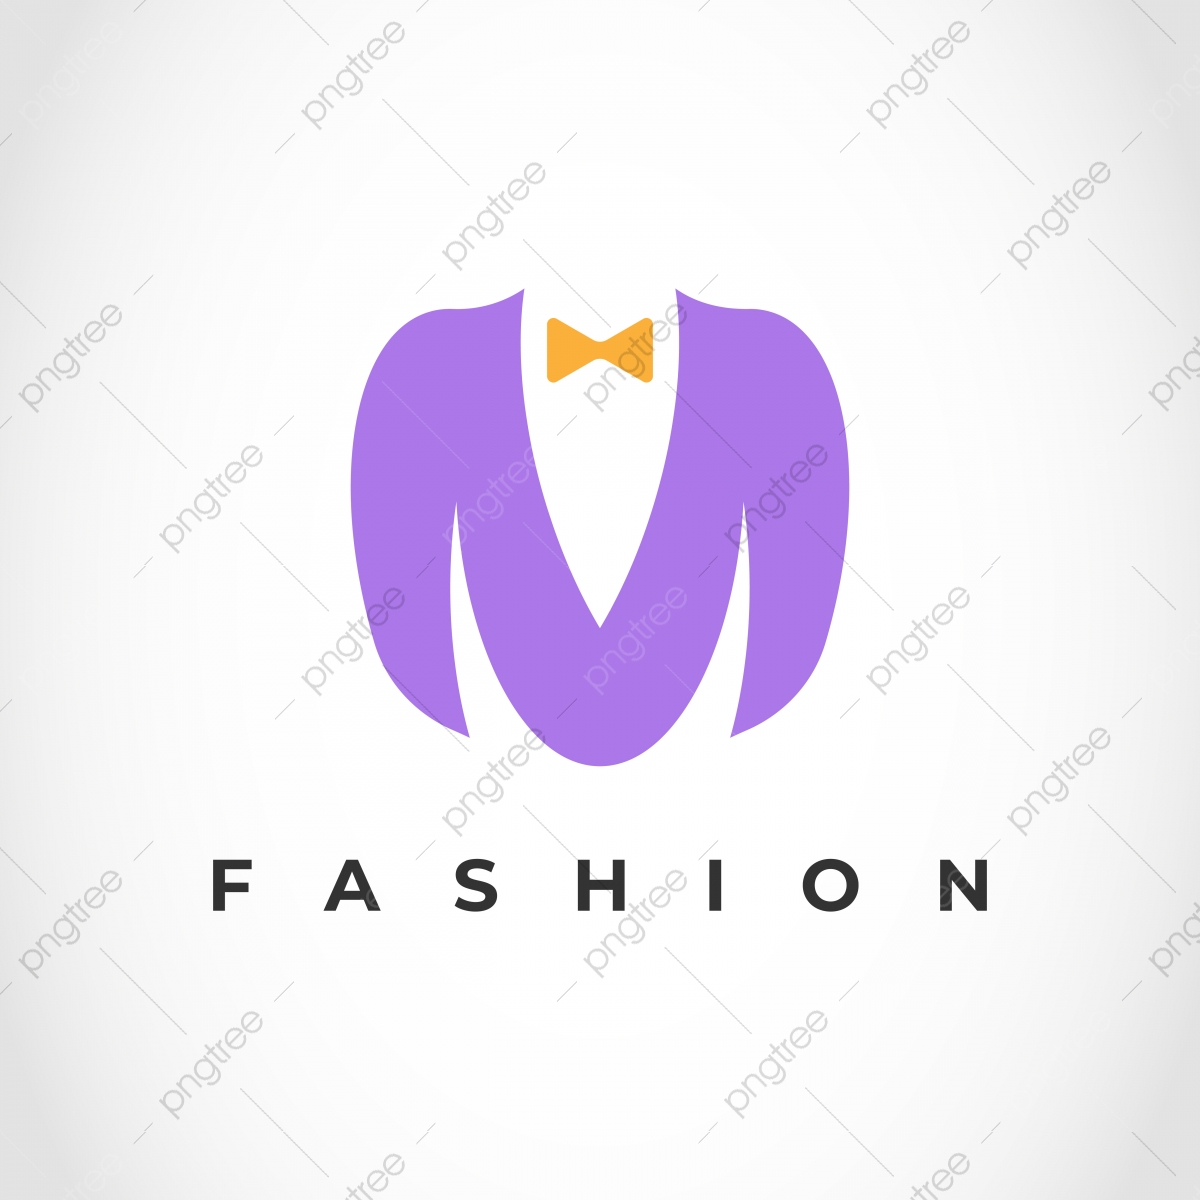 Fashion Logo Png Vector Psd And Clipart With Transparent Background For Free Download Pngtree